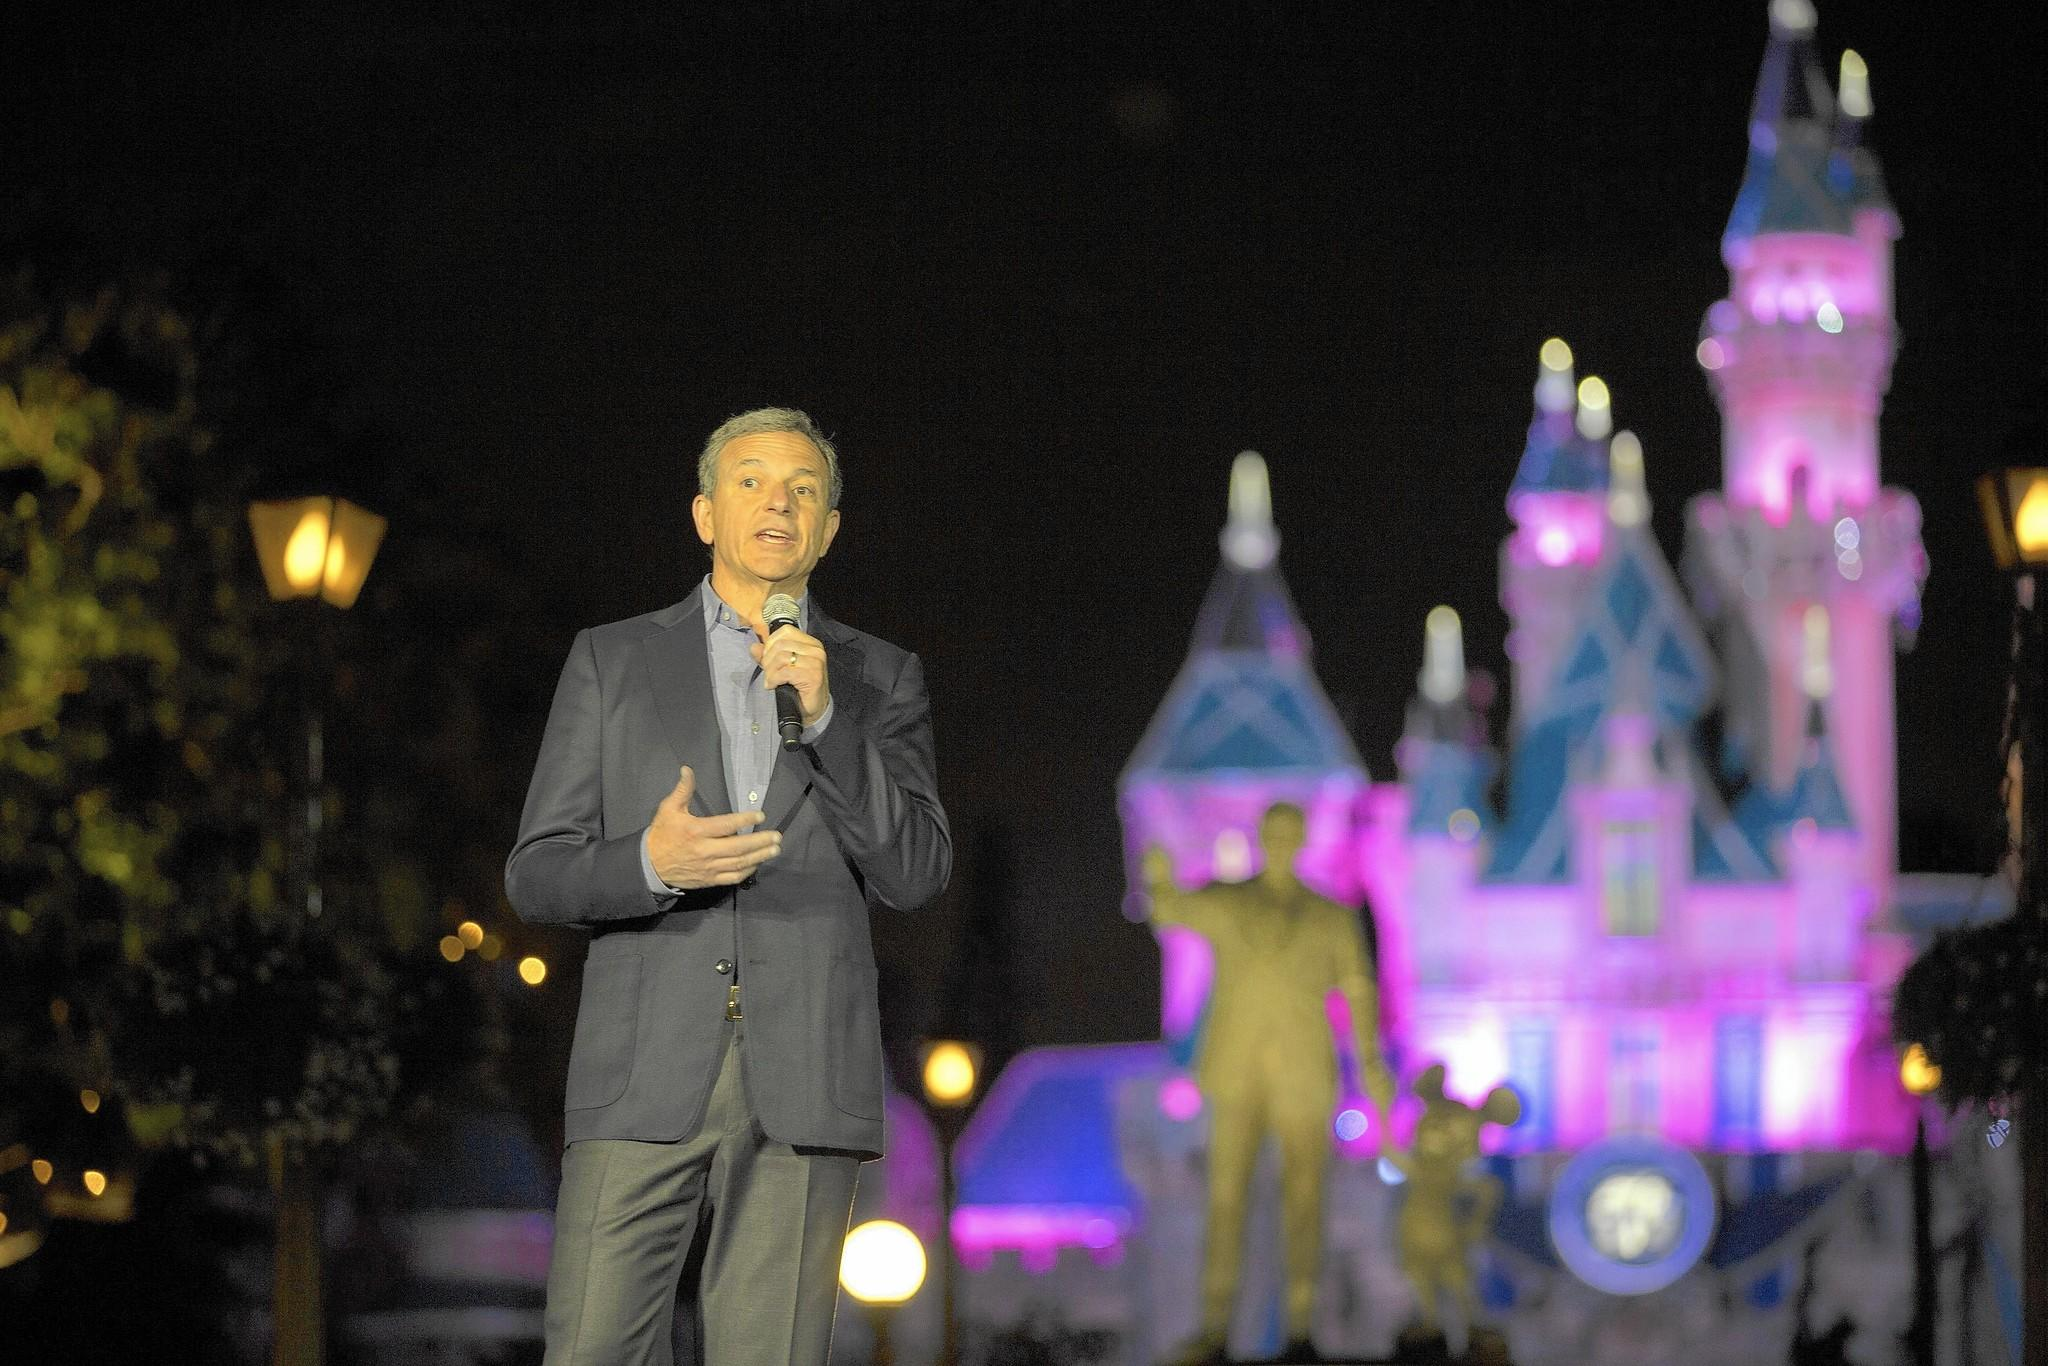 Disney Chief Executive Bob Iger